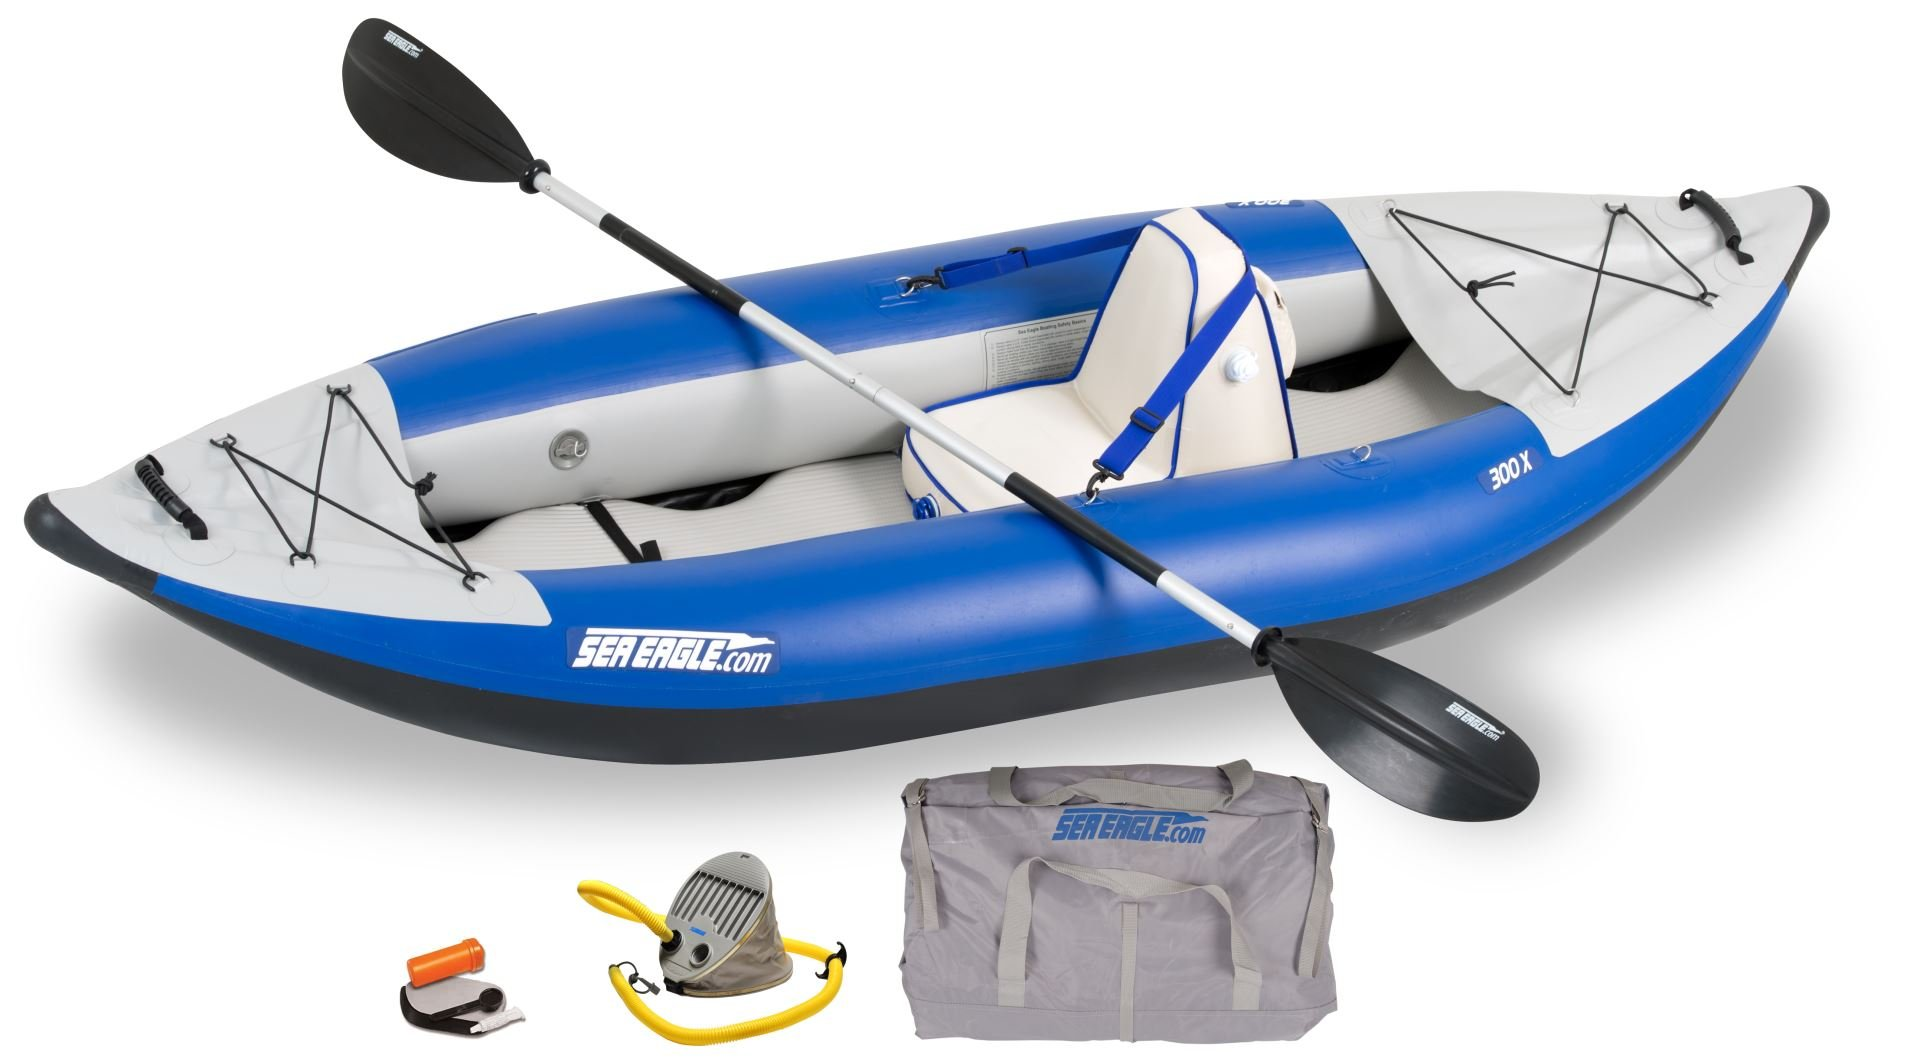 Sea Eagle 300x Explorer Inflatable Kayak with 16 Super-fast Drain Valves